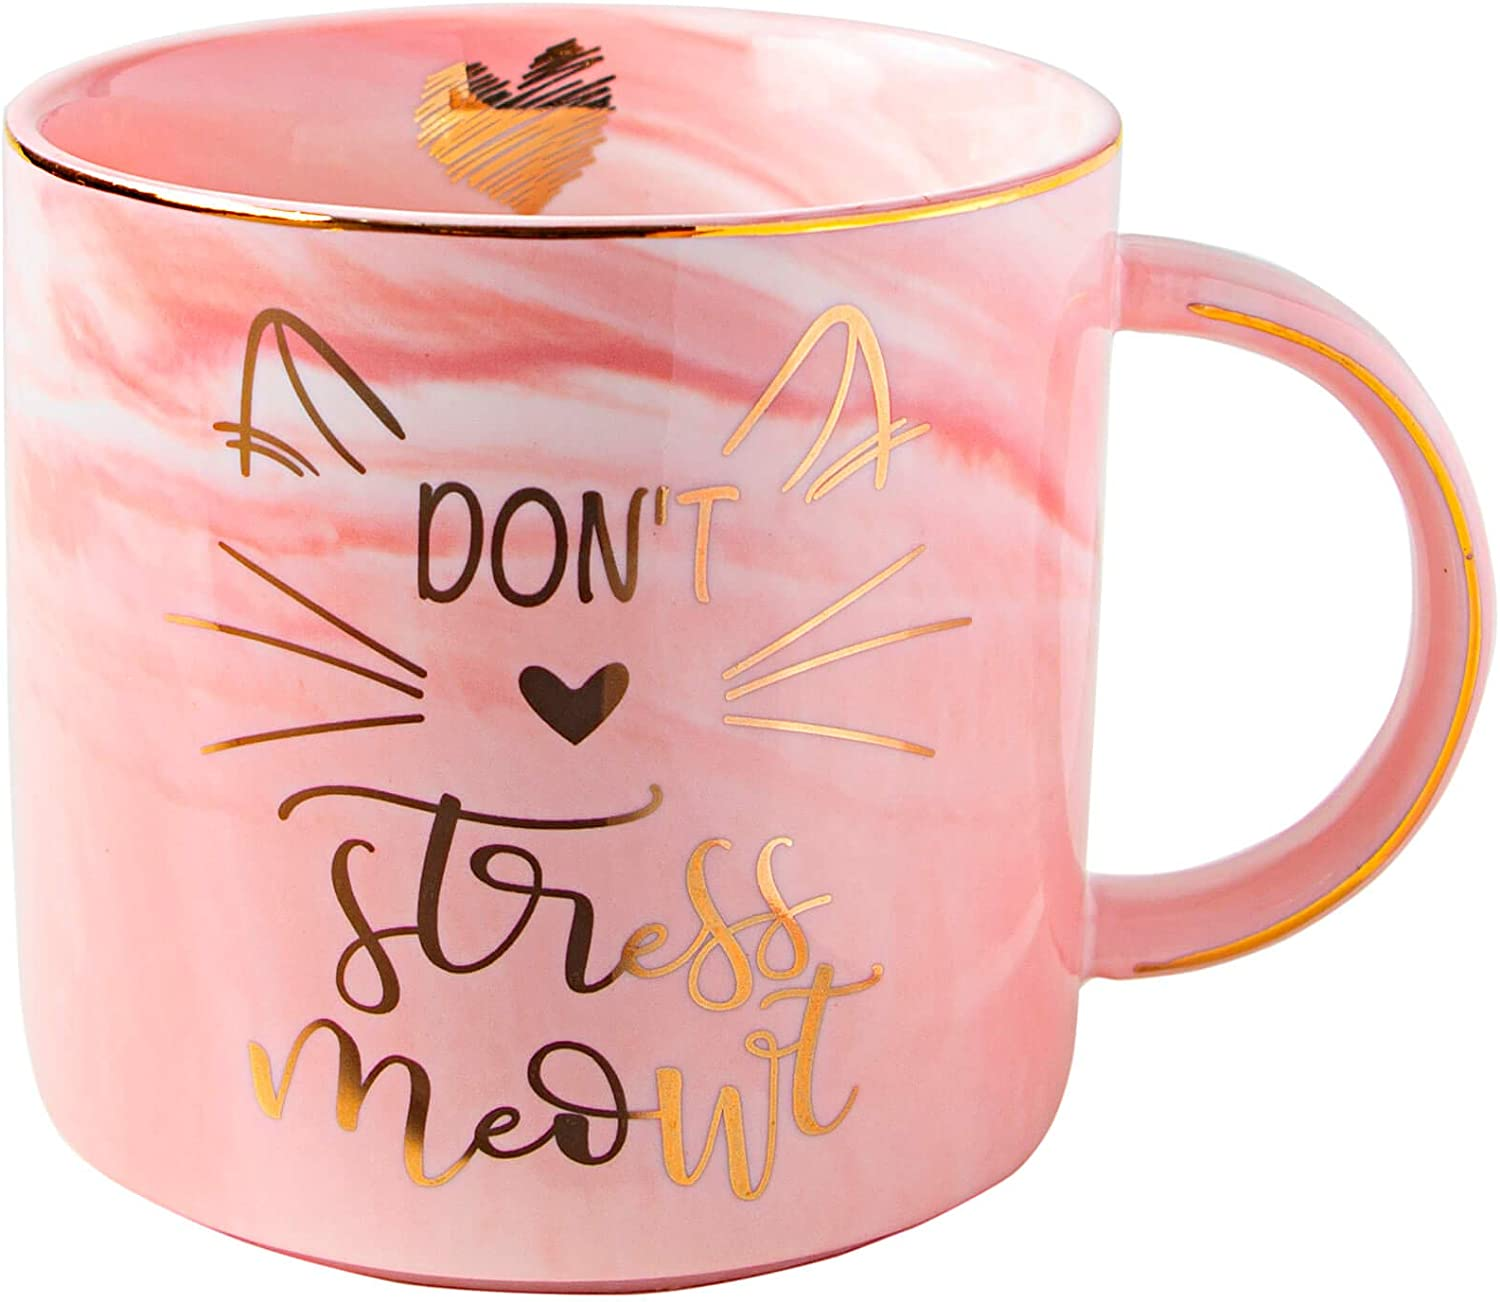 Vilight Cat Mom Gifts for Cat Lovers – Funny Cat Mug for Women and Girls - Don't Stress Meowt Cute Coffee Cup 11 Oz